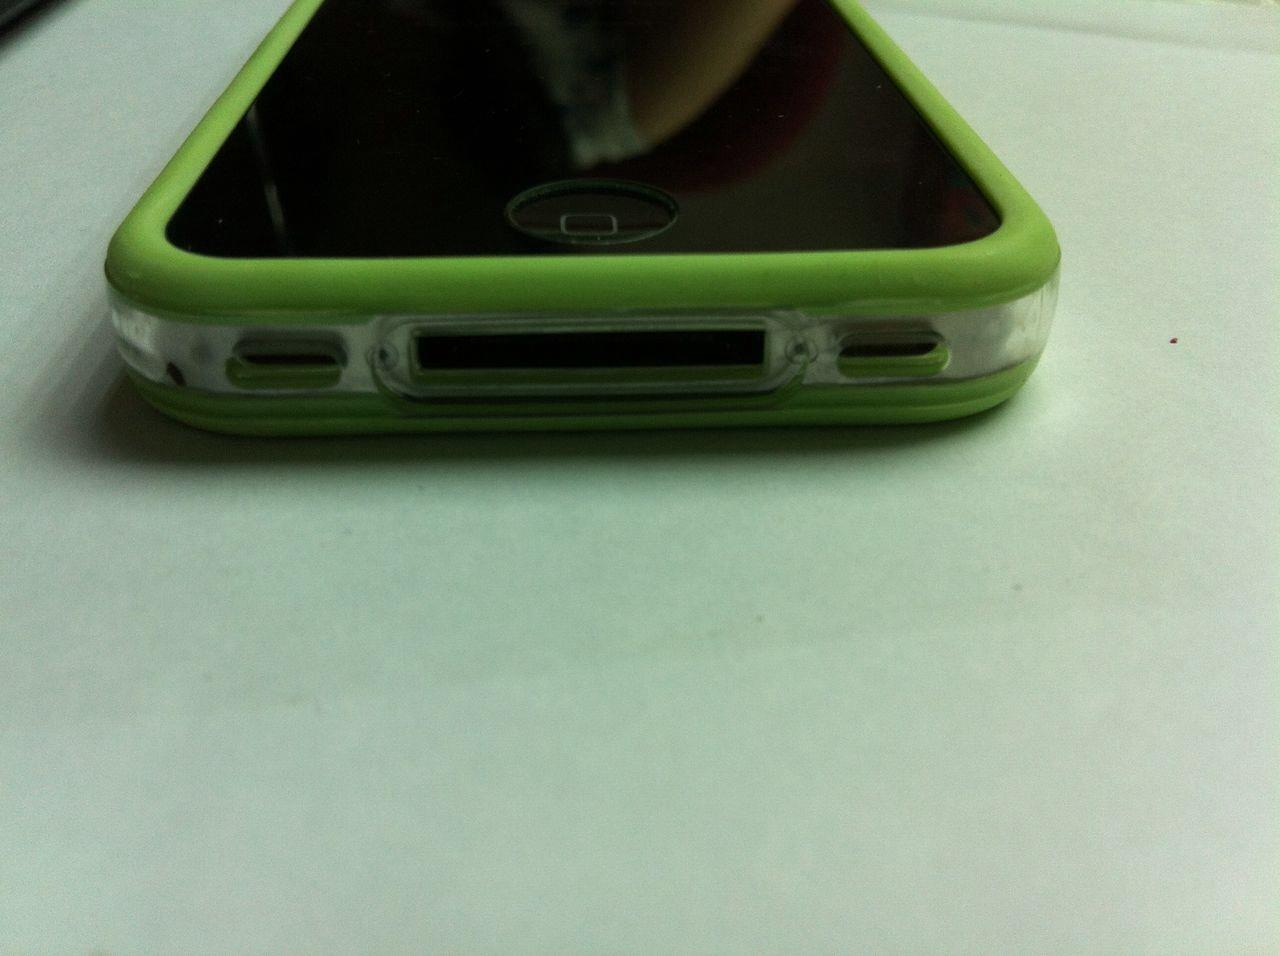 GREEN iphone 4 rubber bumper